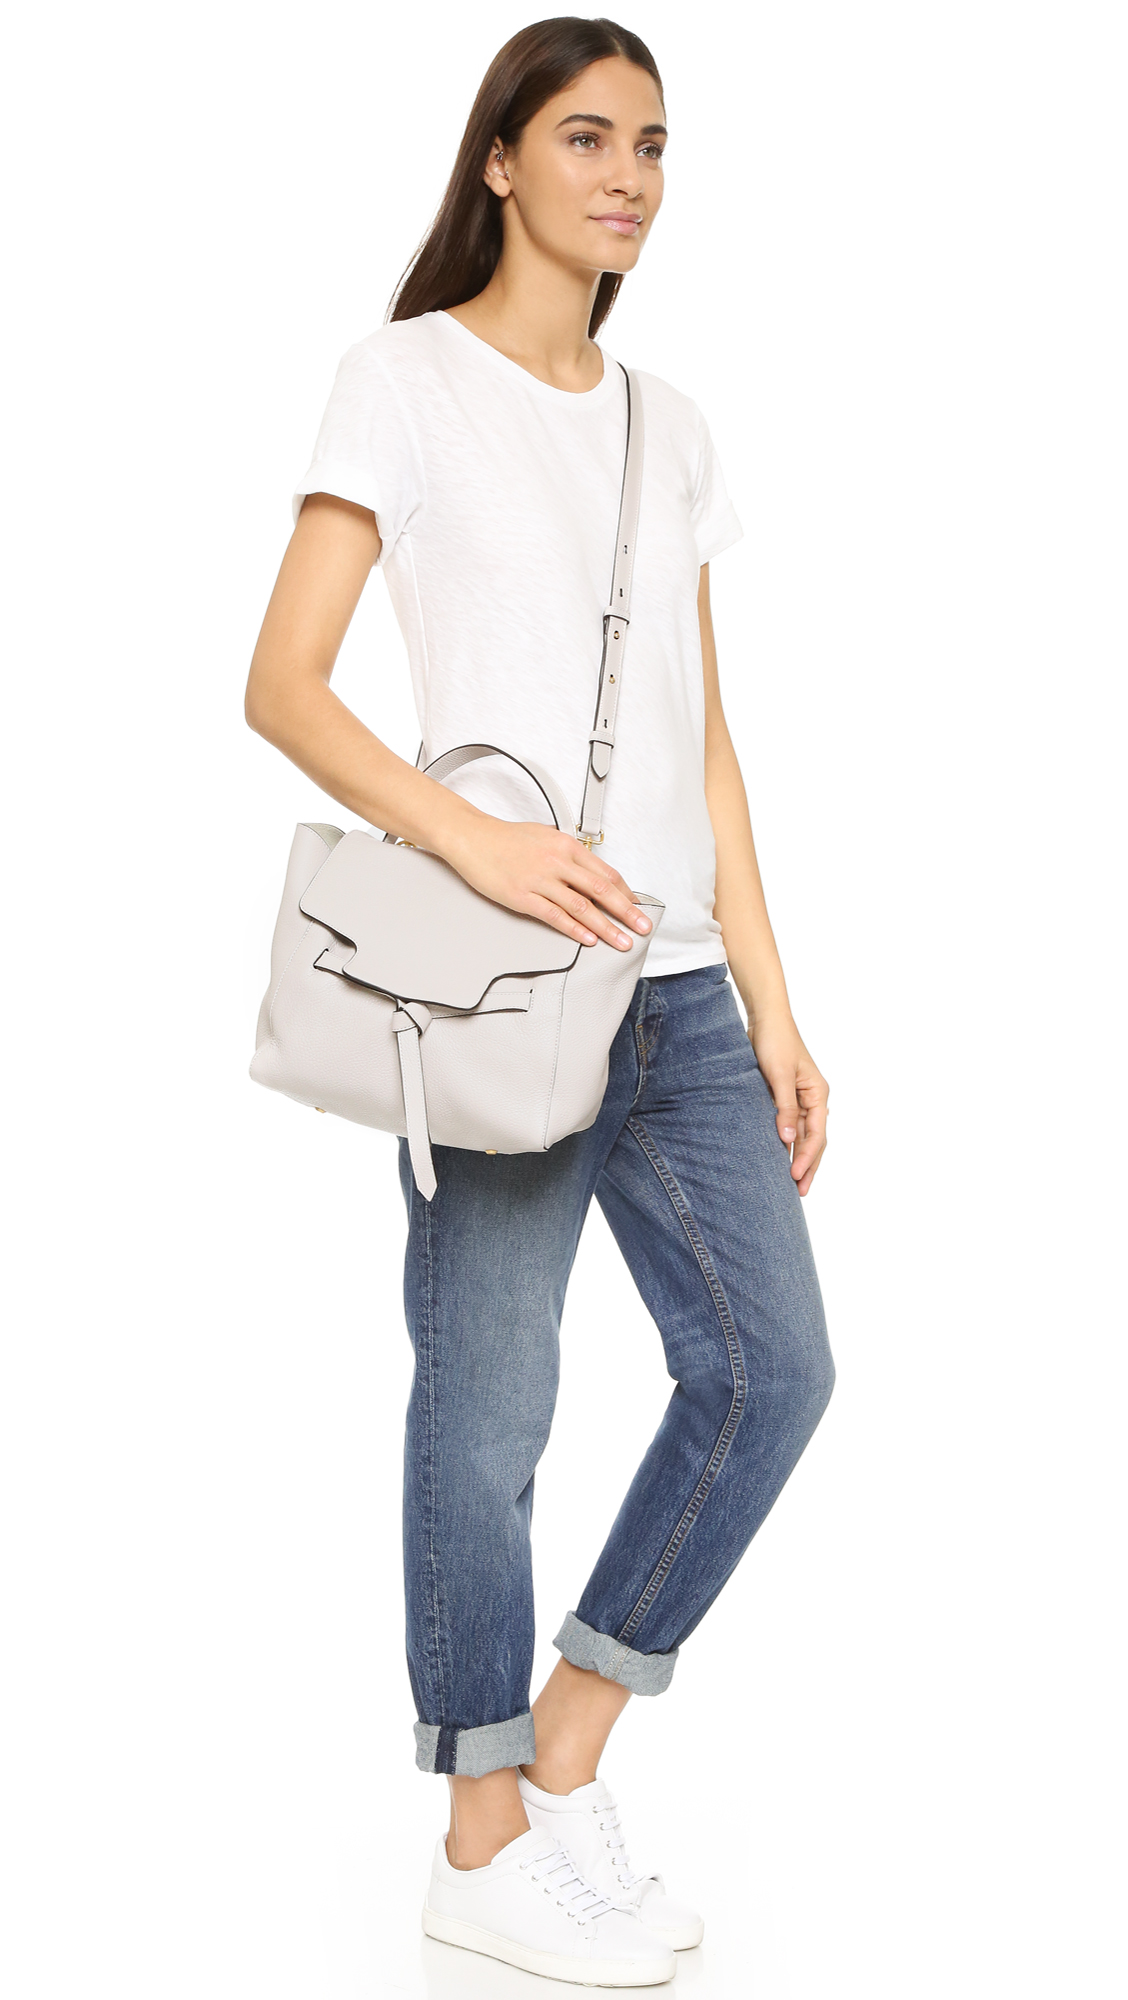 Free Shipping Cheap Online Annie Satchel Annabel Ingall Hurry Up Cheapest Price Cheap Online Clearance Clearance Store WCyNXl0